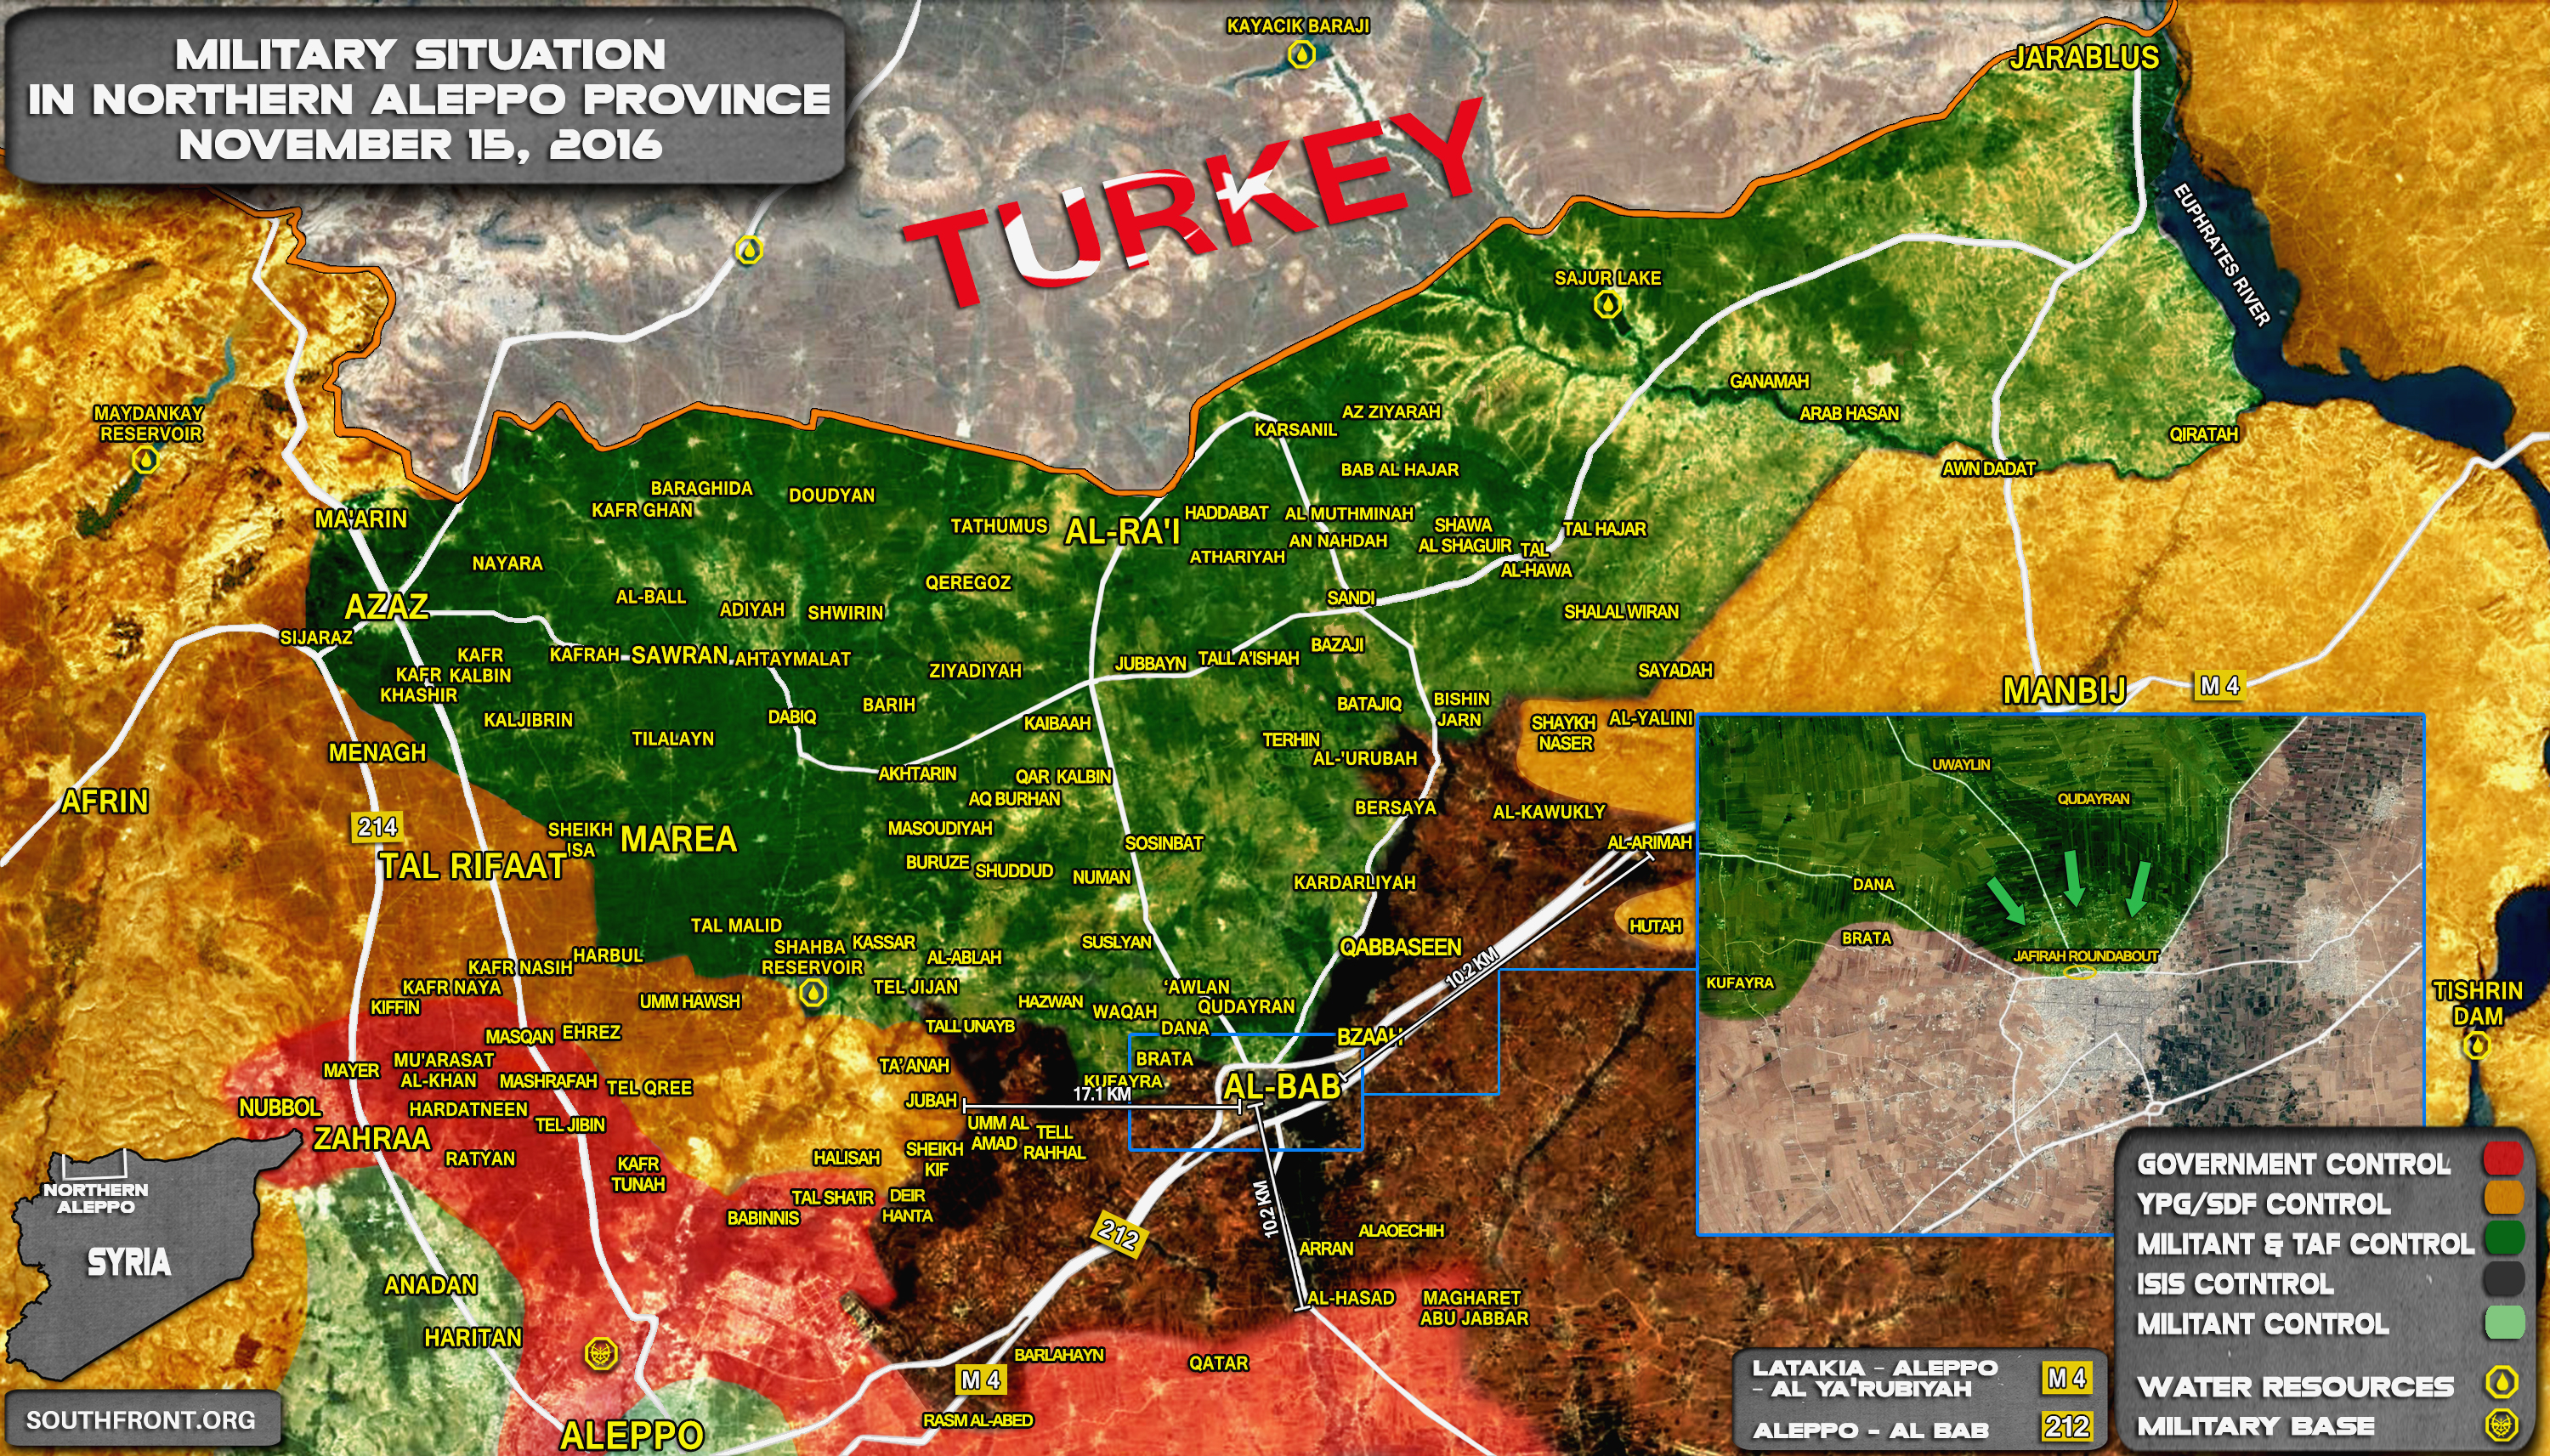 Turkey-led Forces Entered Town of Al-Bab in Syrian Aleppo Province